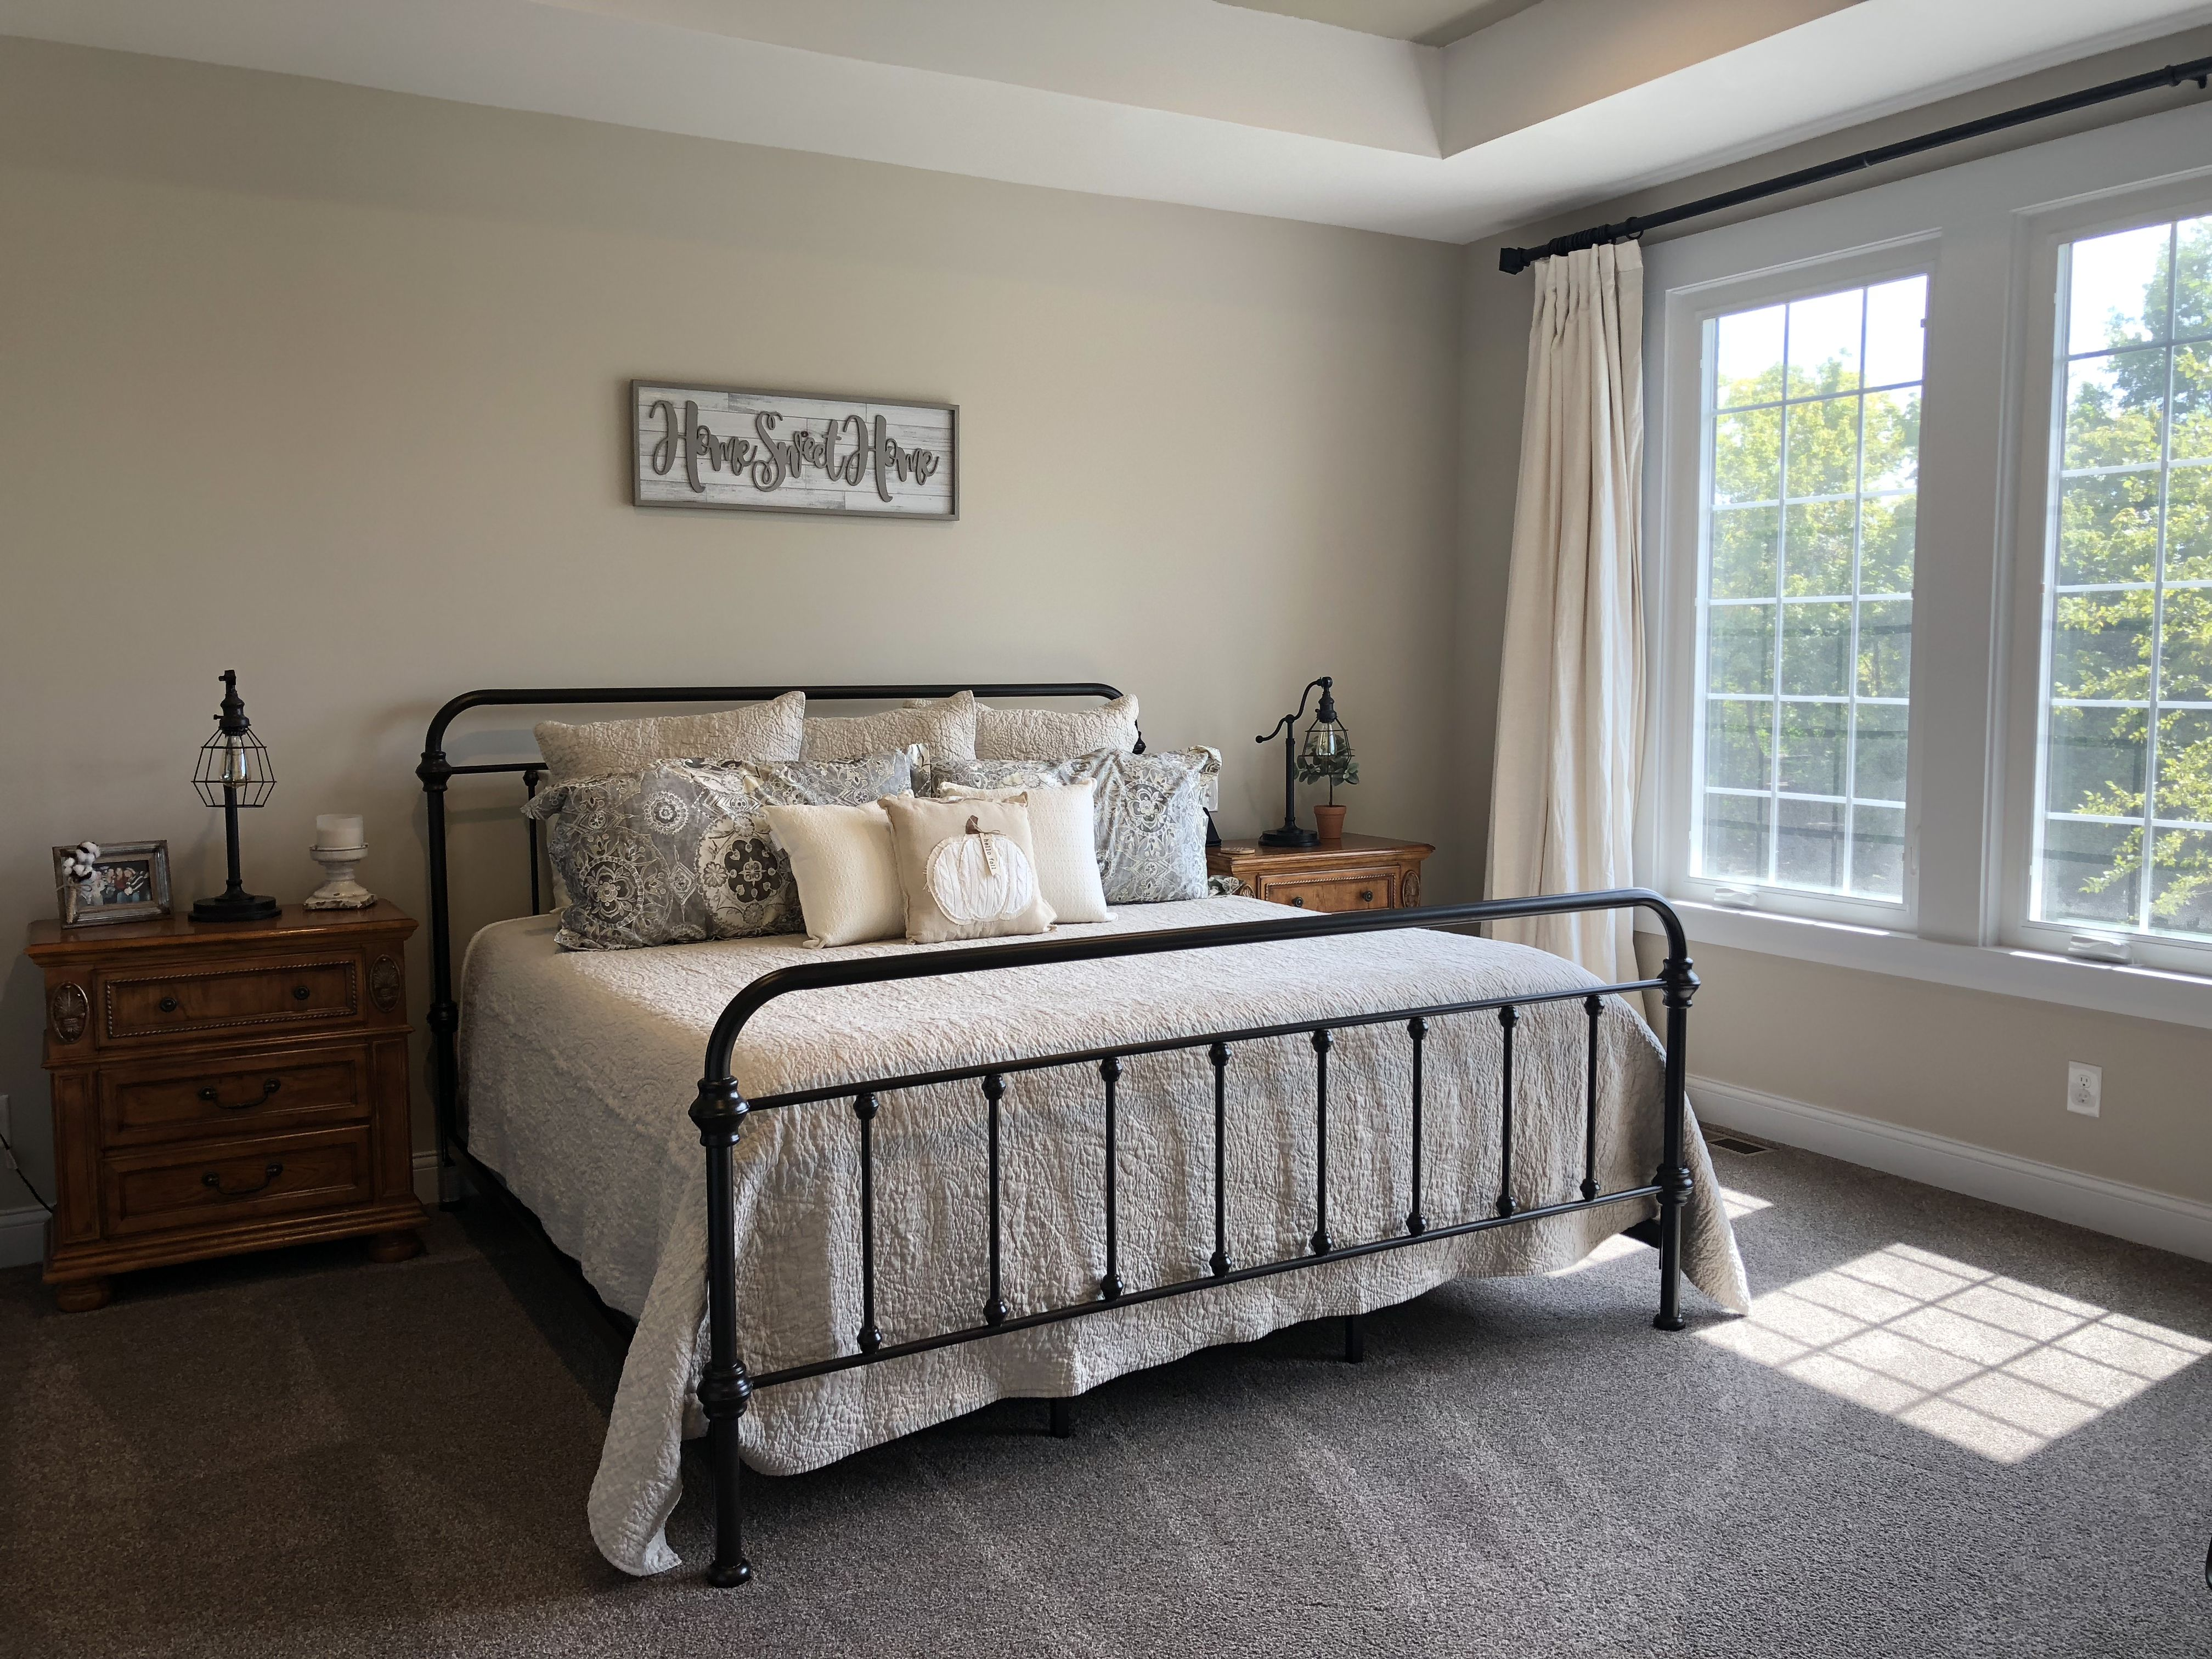 Farmhouse bed and Pottery Barn bedding. Home decor